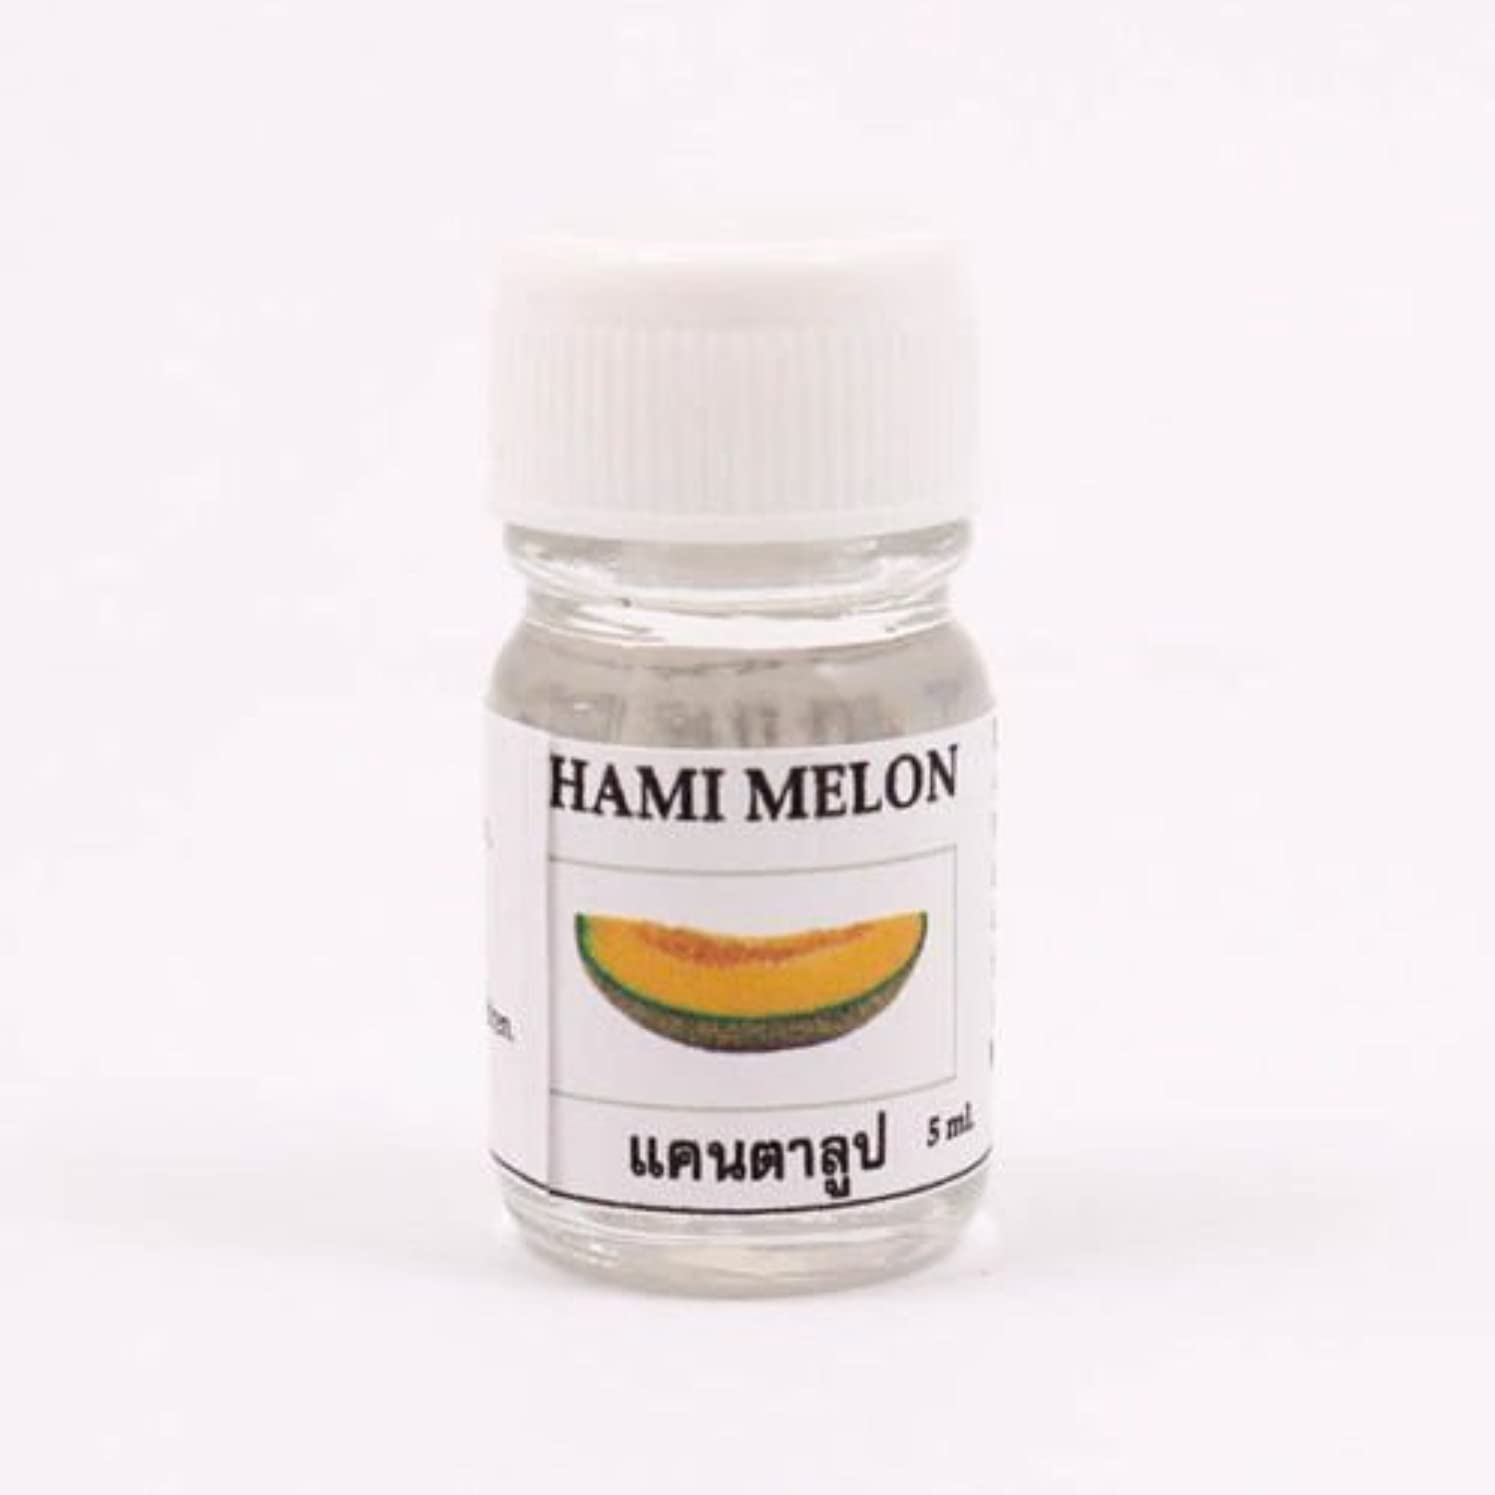 段階バイナリ落とし穴6X Hami Melon Aroma Fragrance Essential Oil 5ML cc Diffuser Burner Therapy